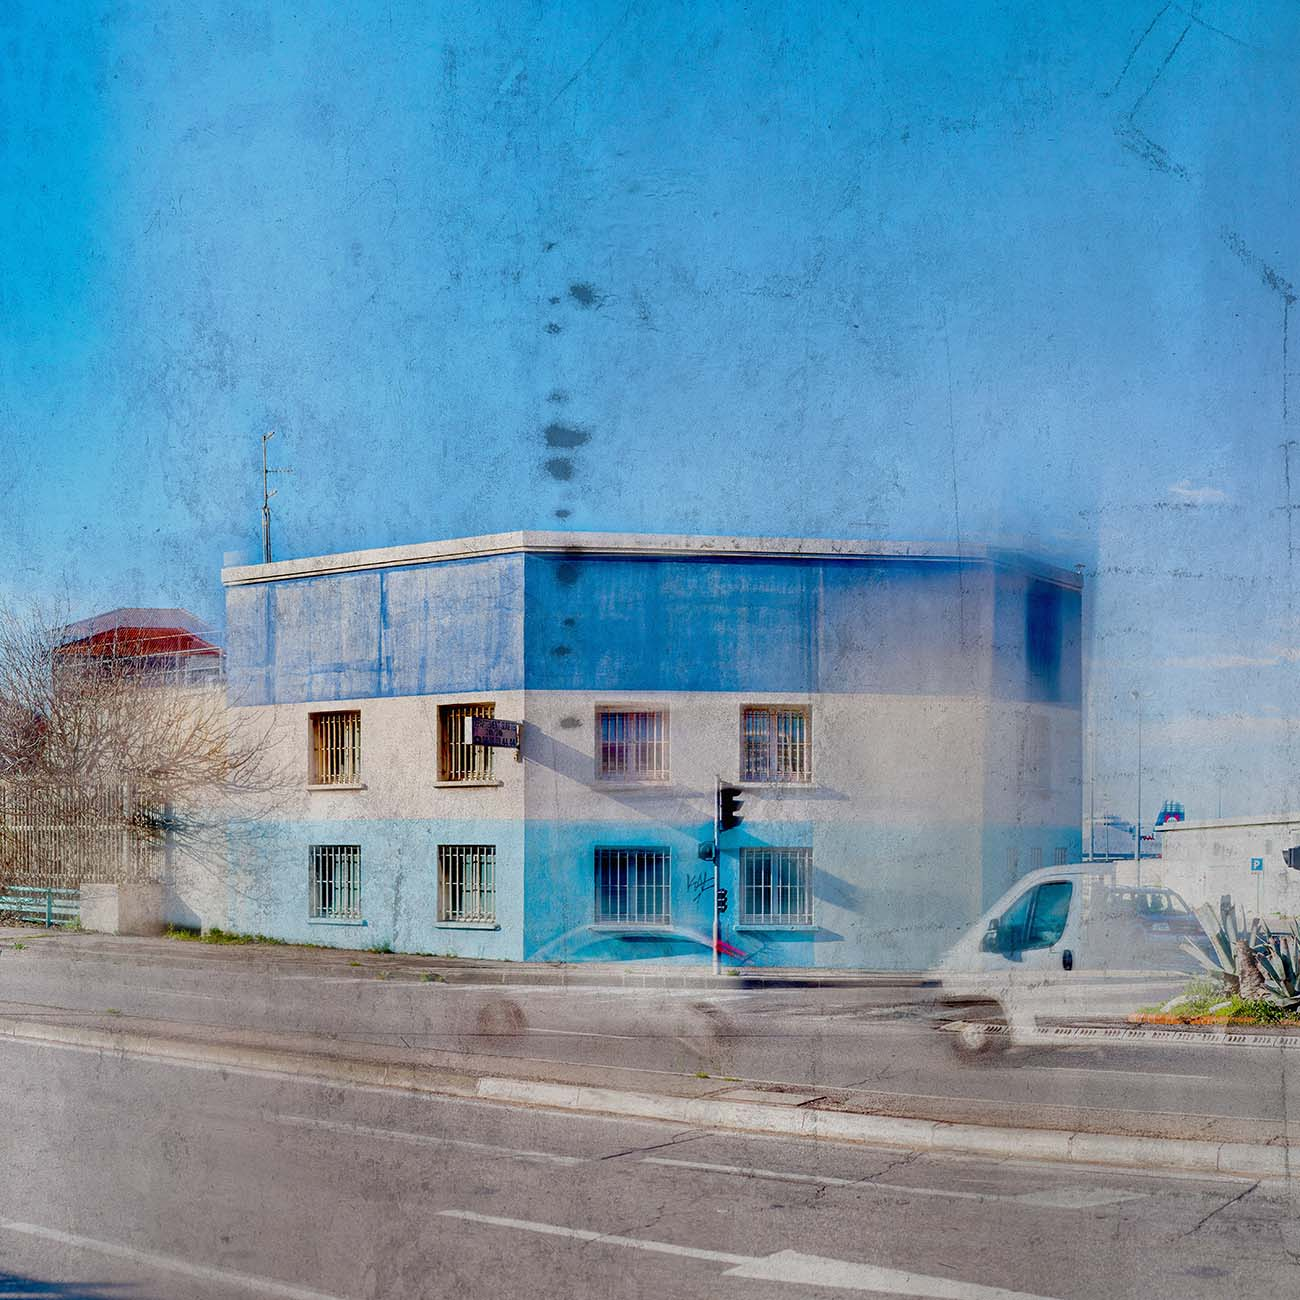 Le Bâtiment bleu Port autonome Bleu Marseille Paul-Louis LEGER Photographe